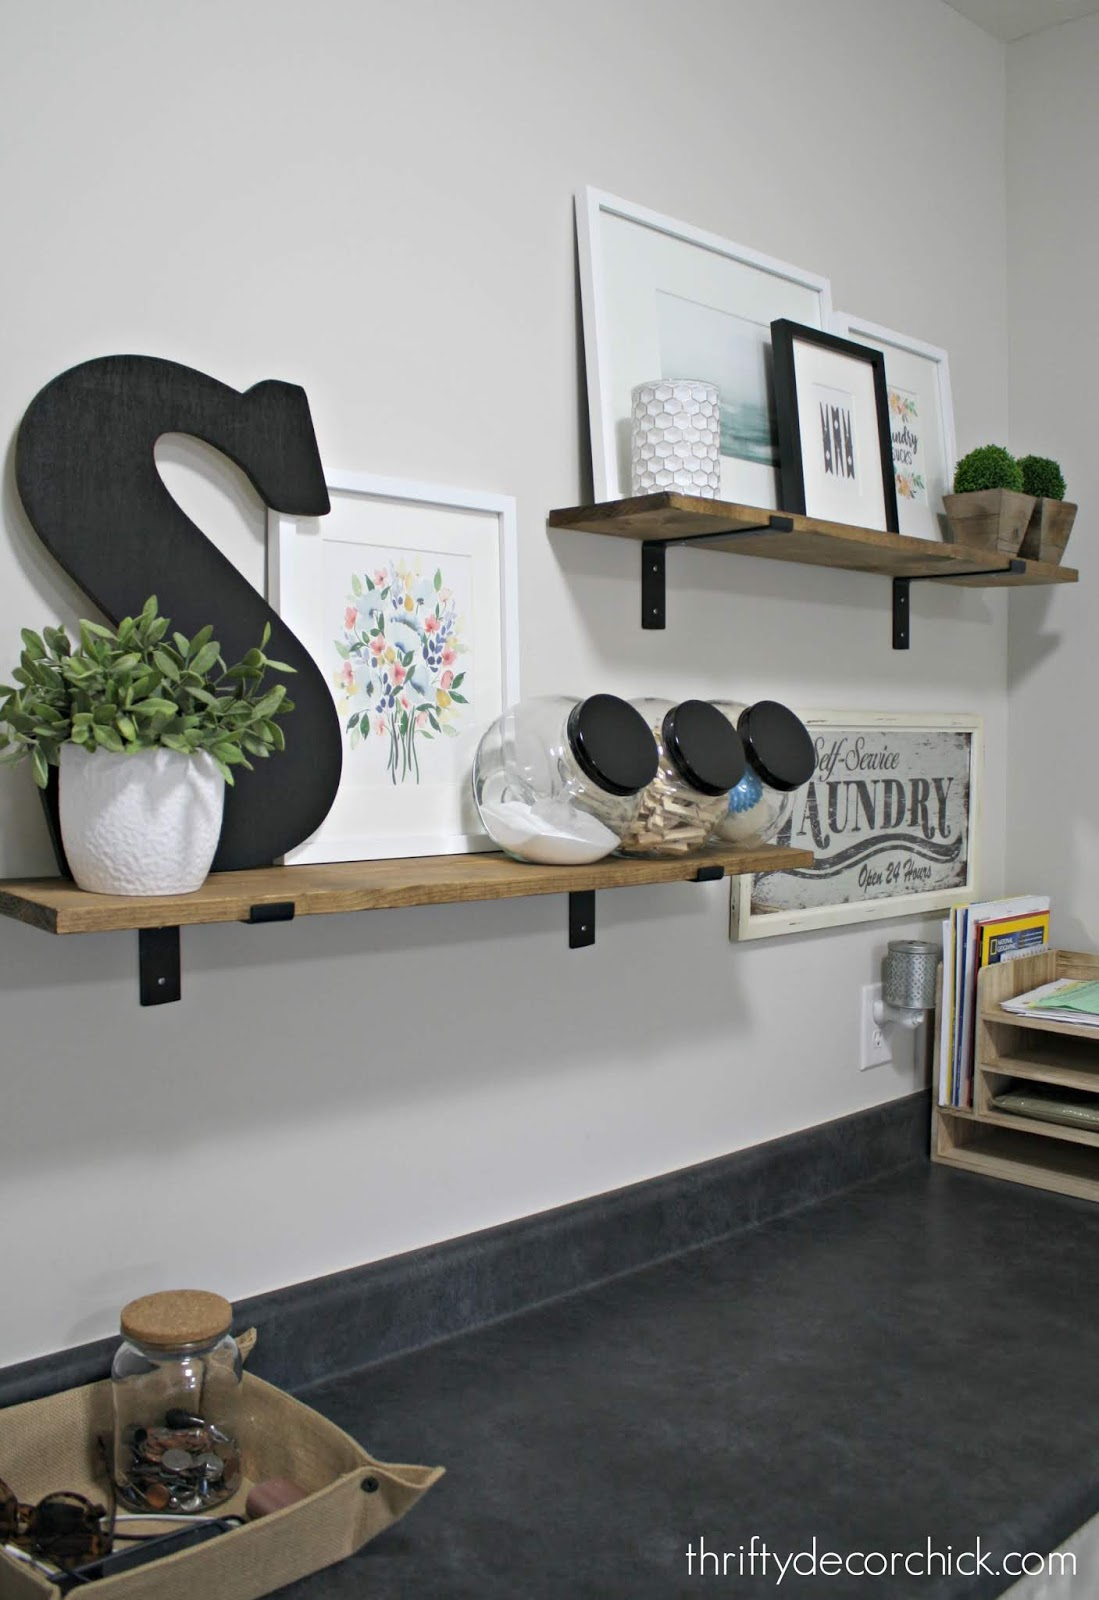 Inexpensive printable art for laundry room